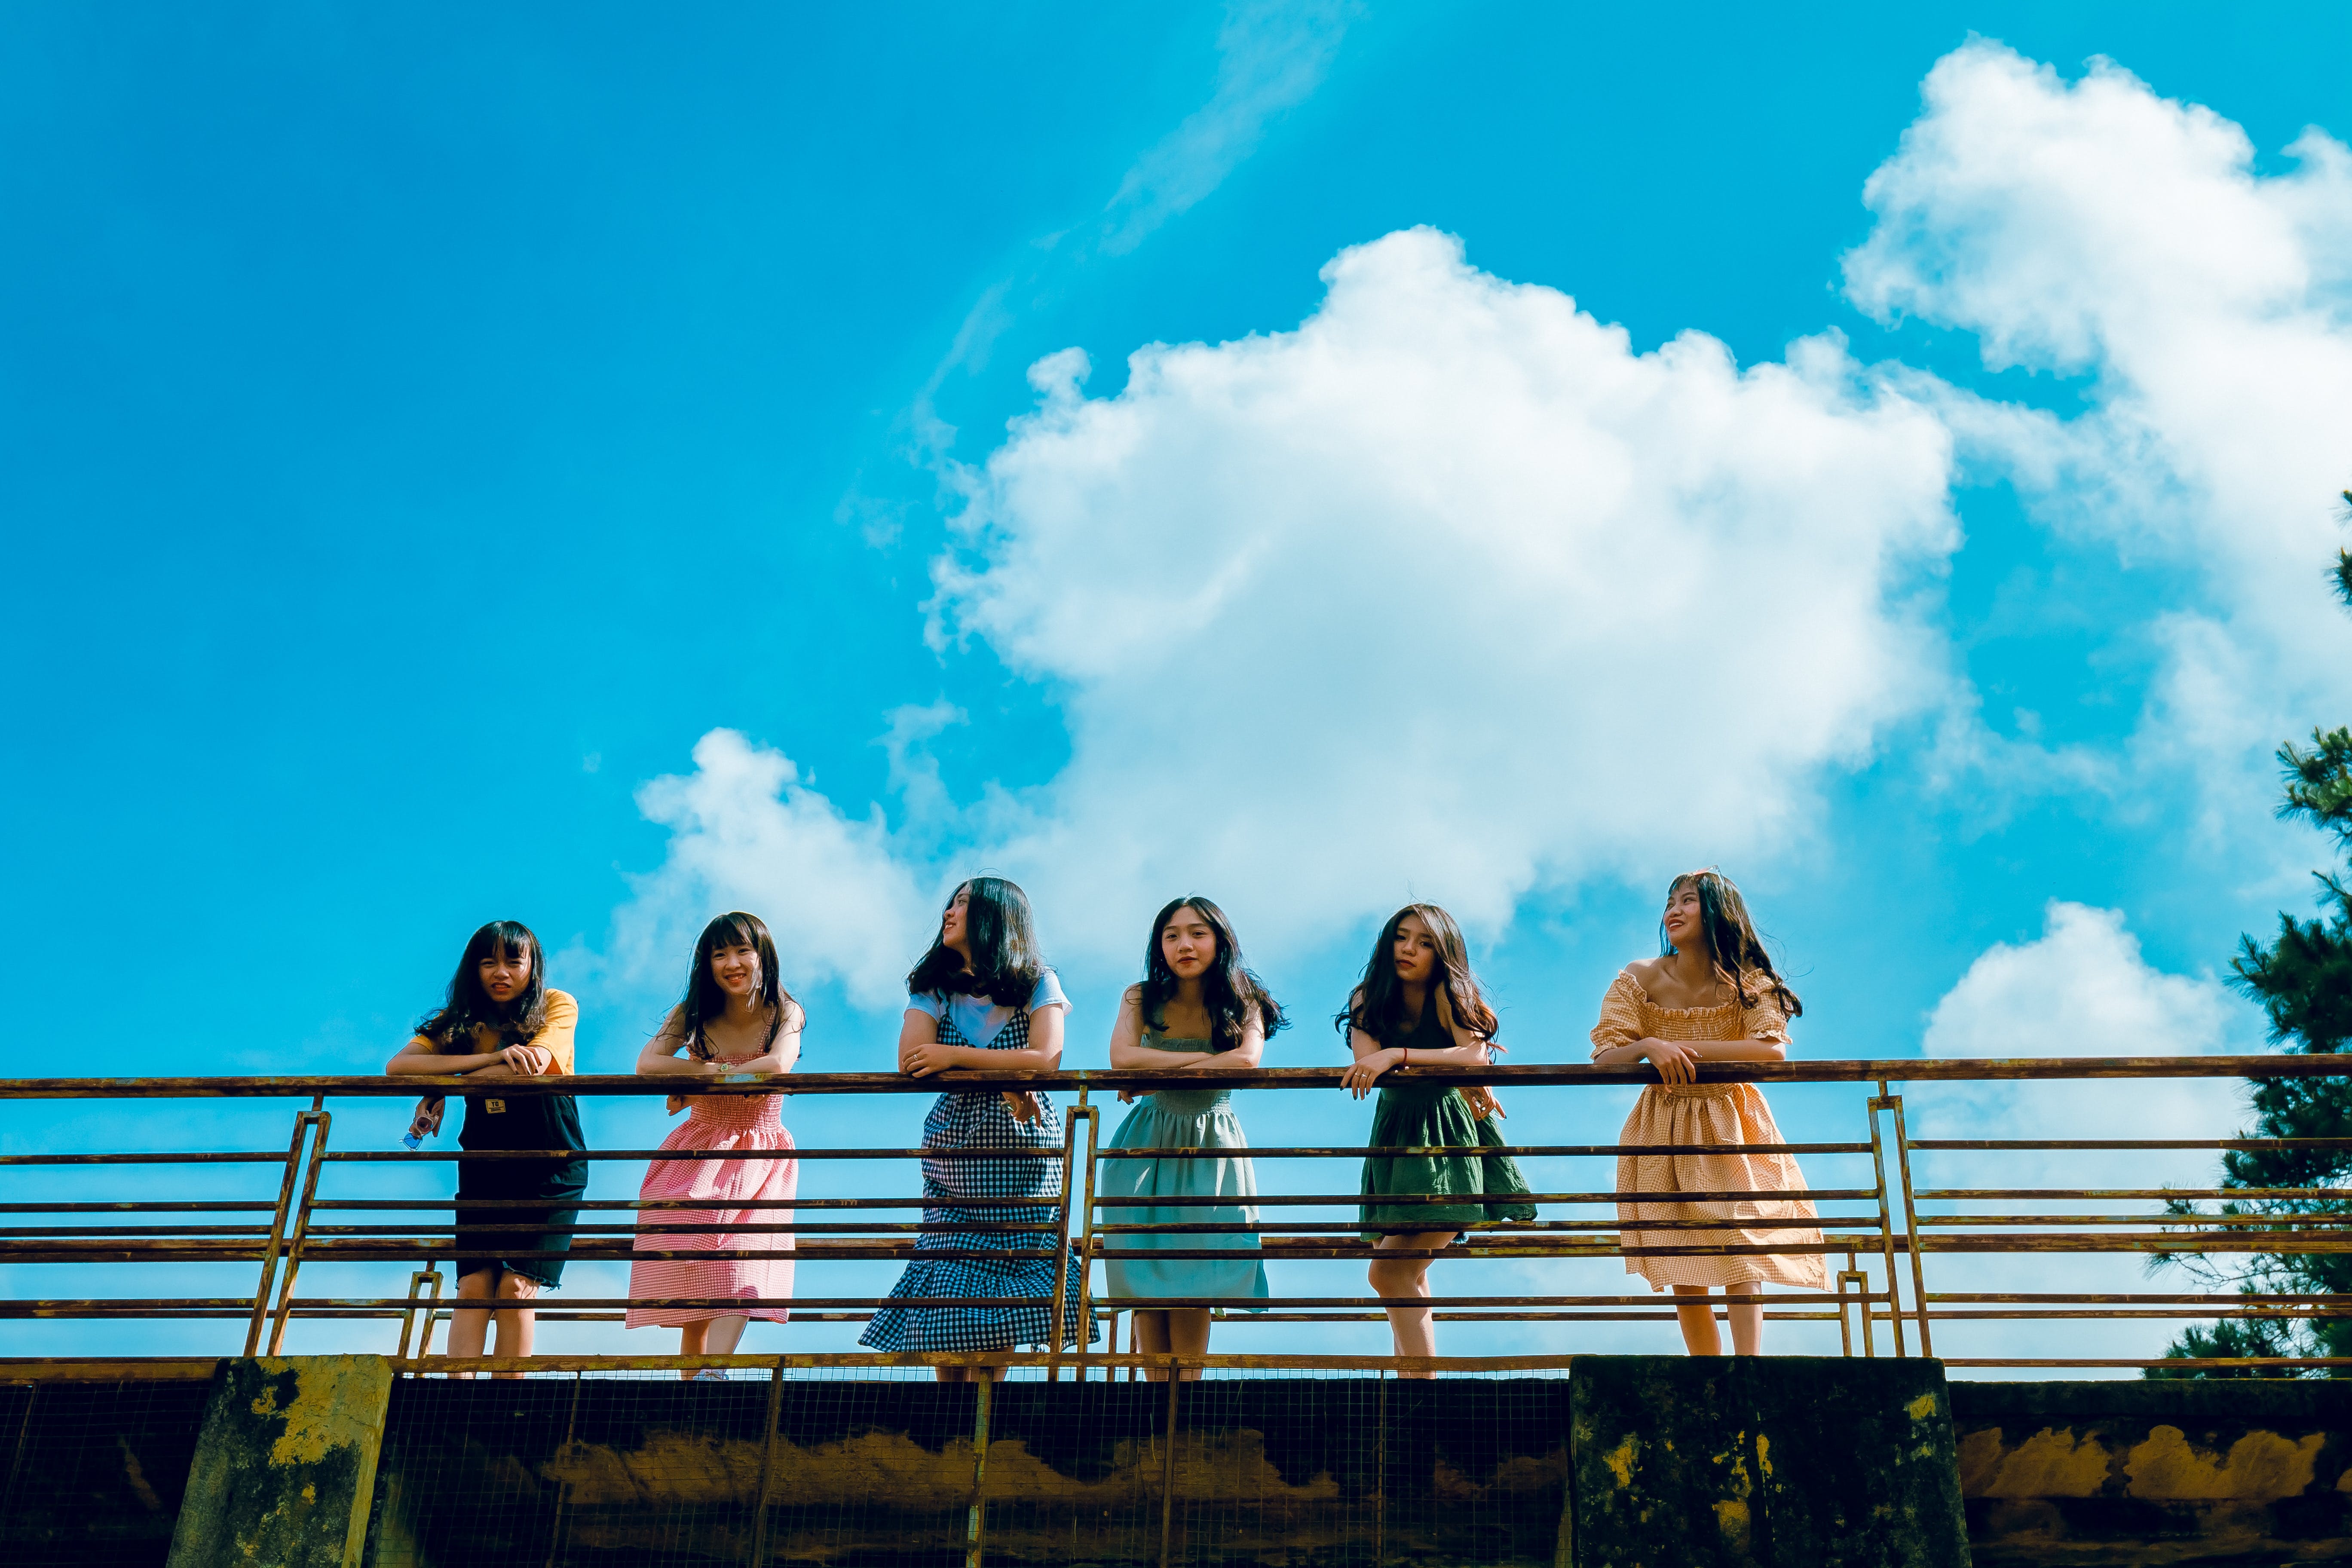 Six Women Wearing Mini Dresses Leaning on Bridge's Rail